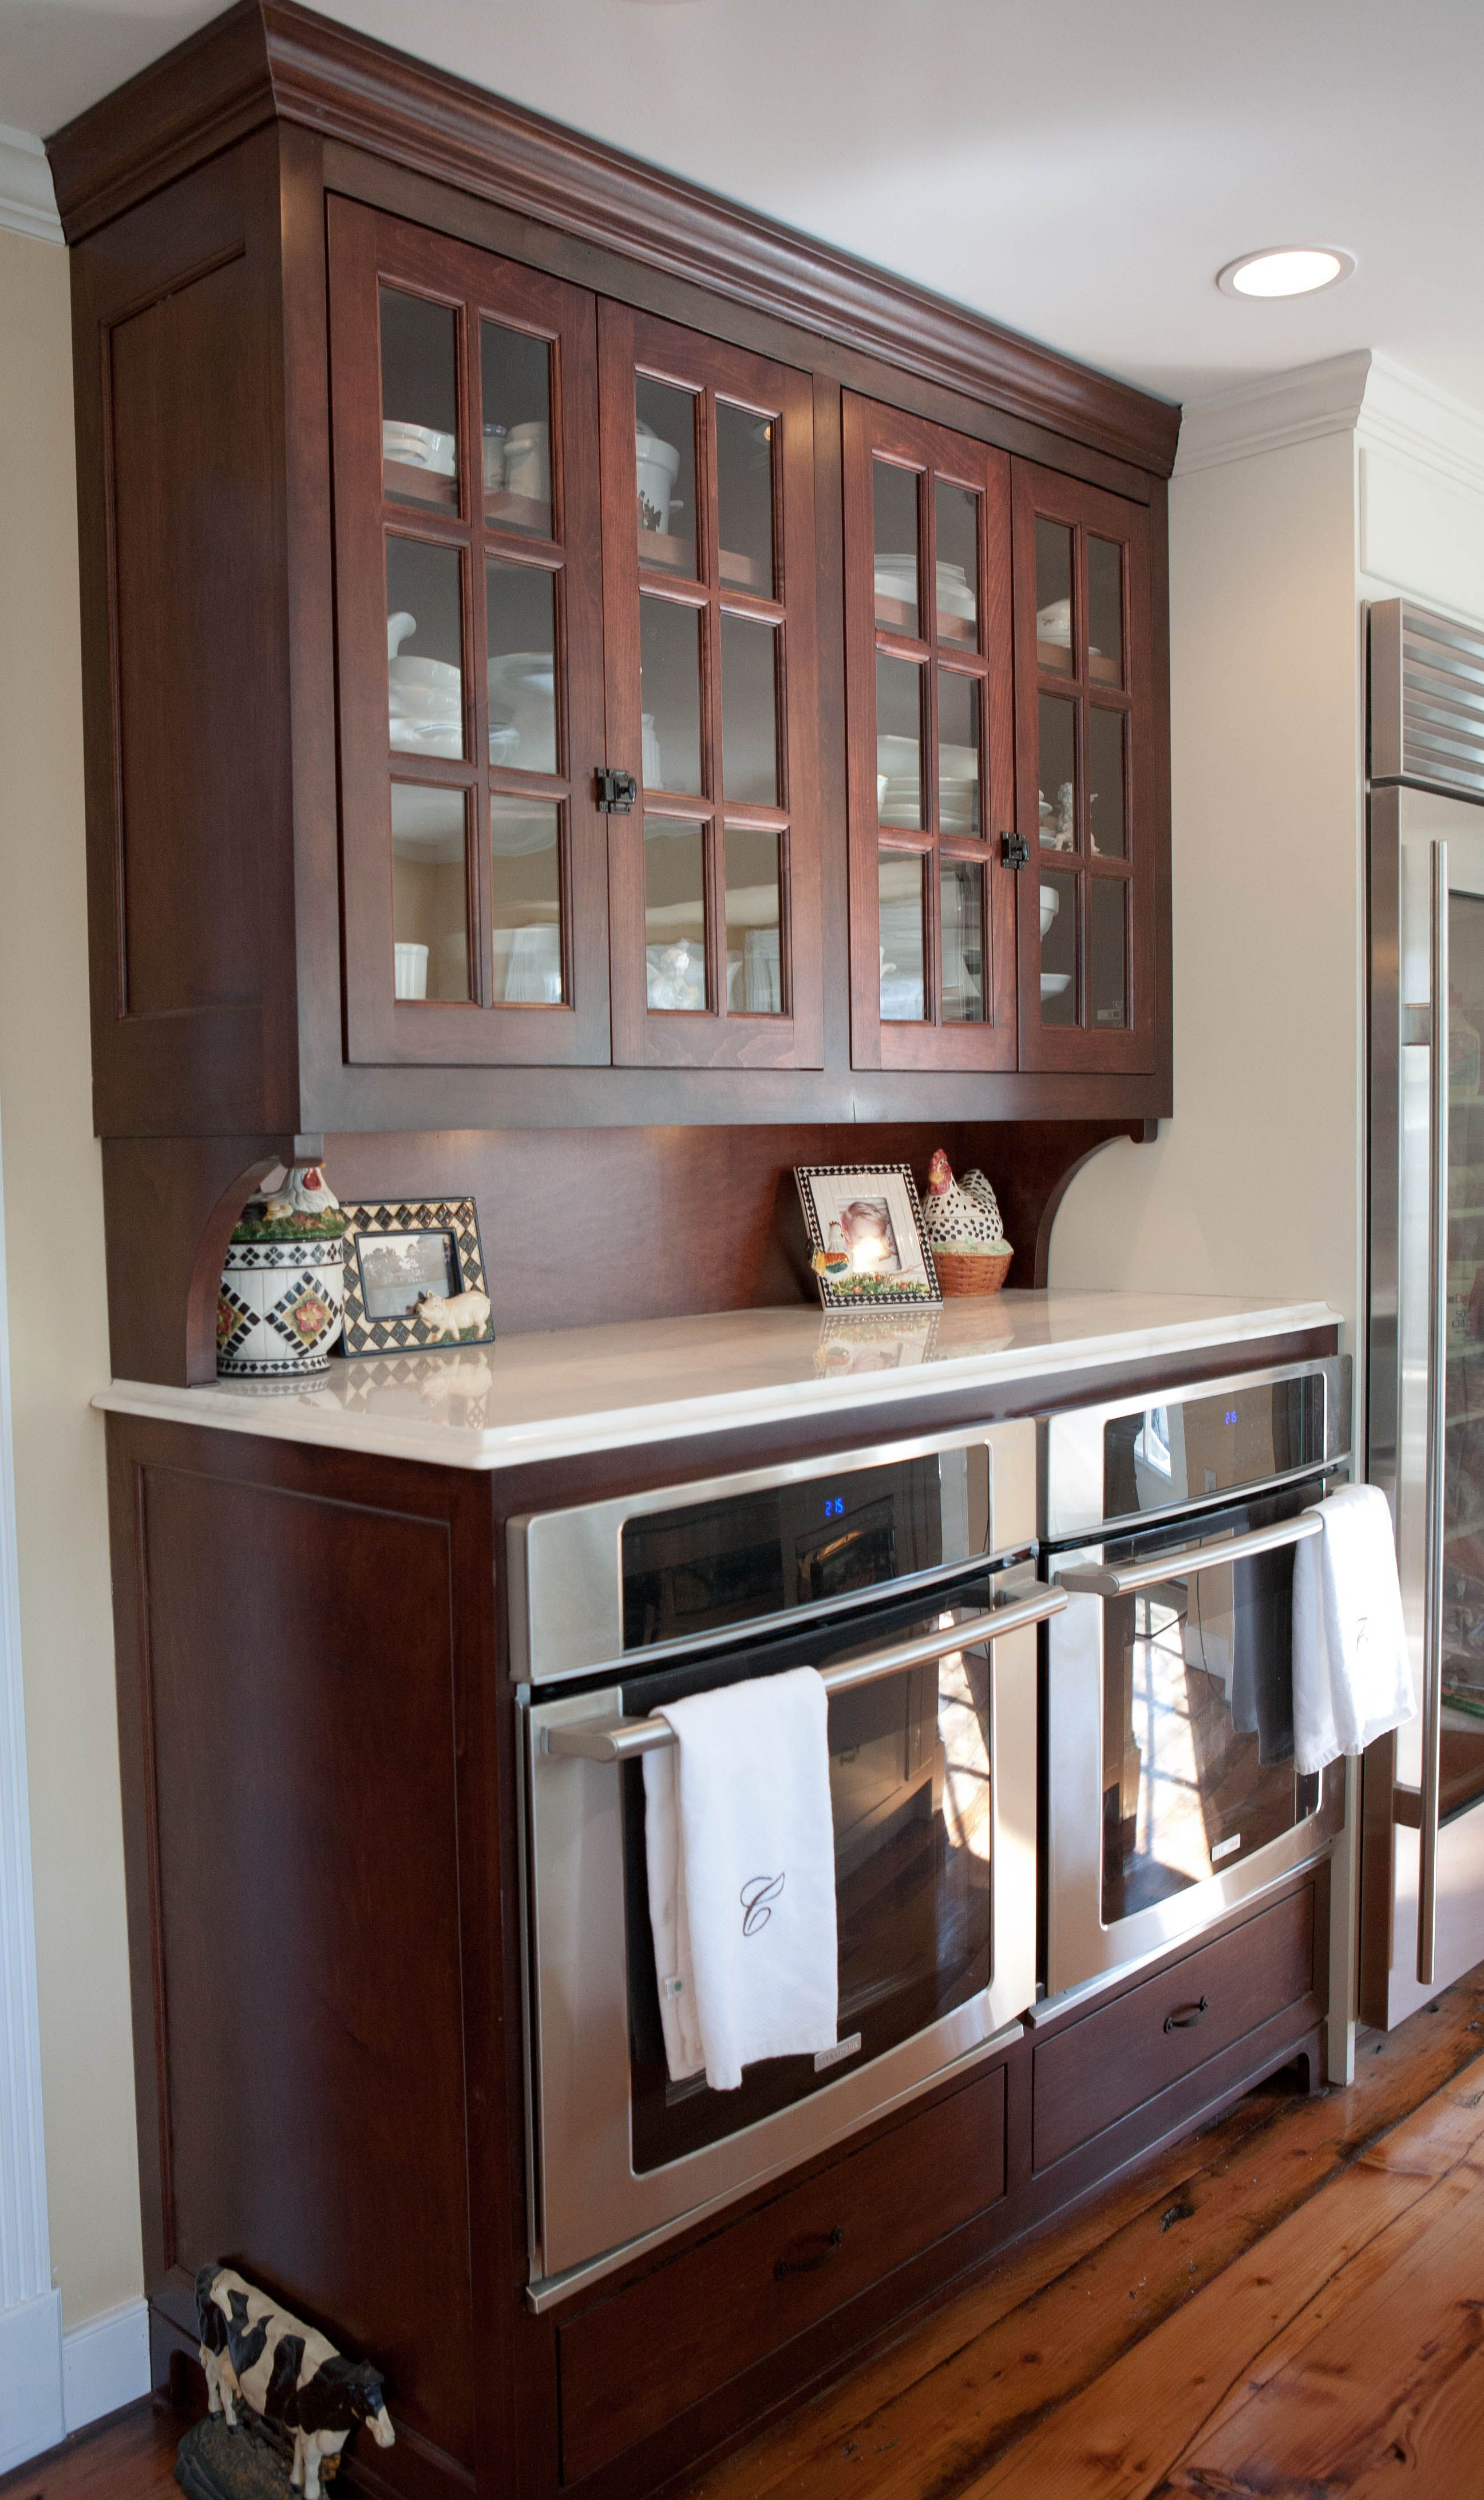 Custom Appliance Cabinet By Van Jester Woodworks With Images Kitchen Design Small Custom Kitchen Cabinets Kitchen Remodel